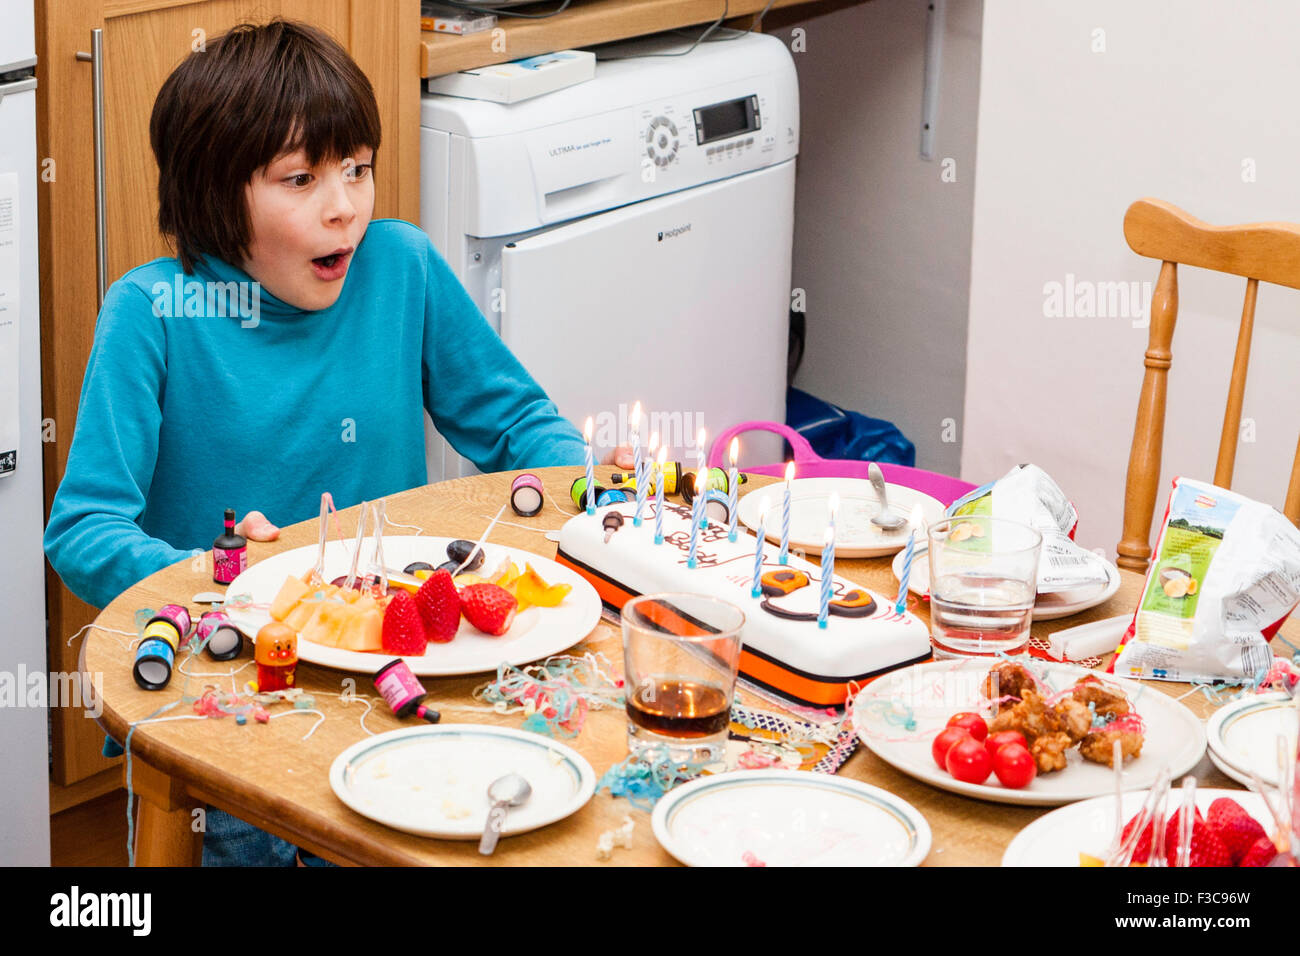 Mixed ethnicity, (Japanese English) 11 year old boy sitting at head of kitchen table blowing candles out on birthday - Stock Image